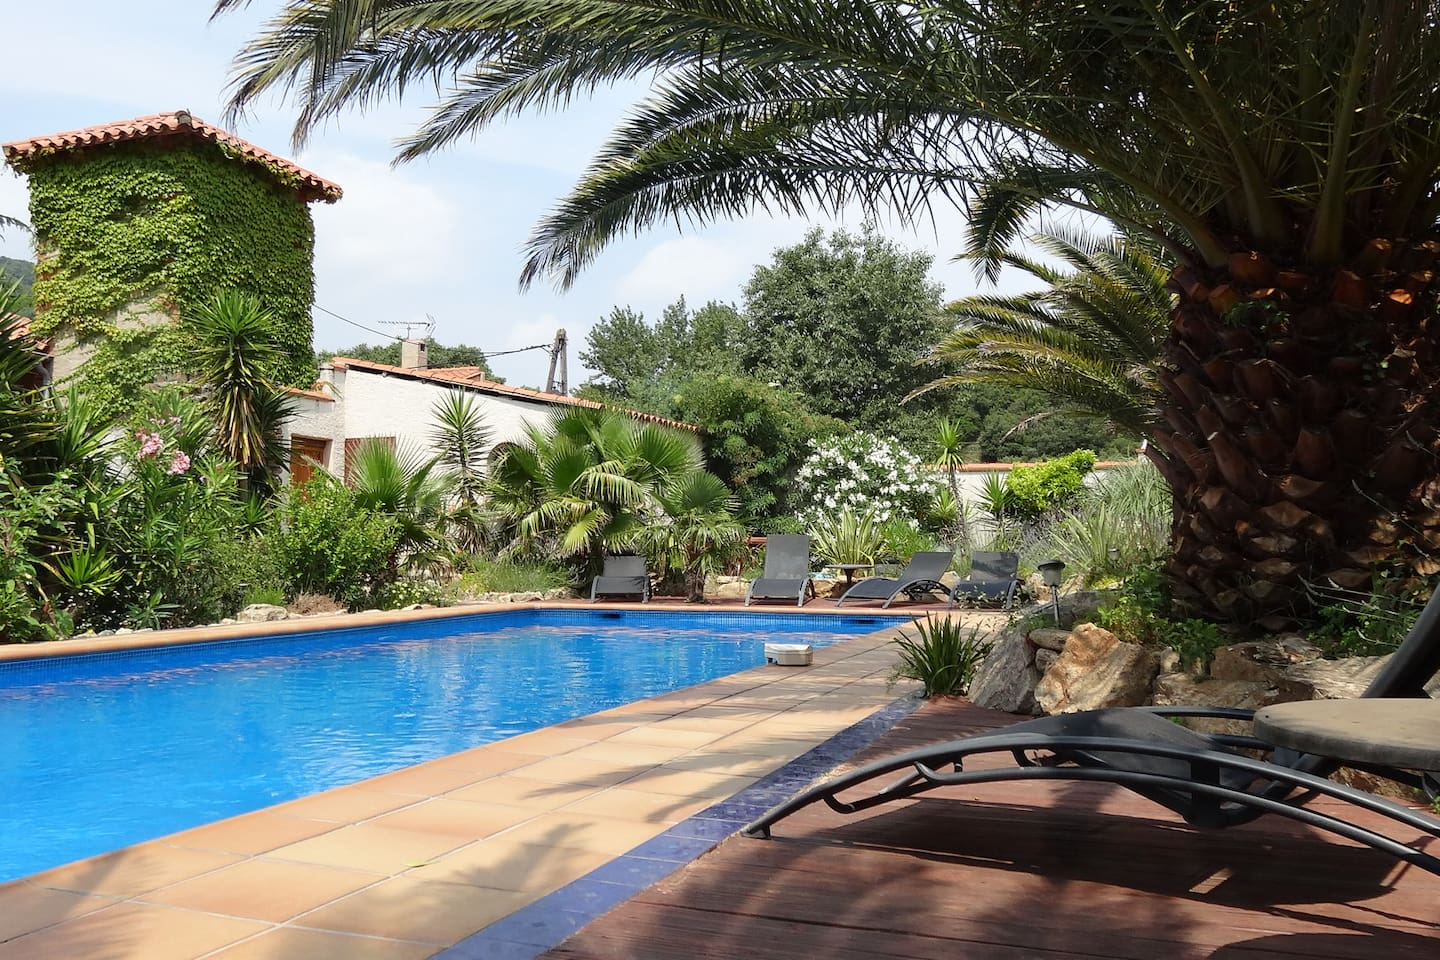 swimming pool in palm trees garden